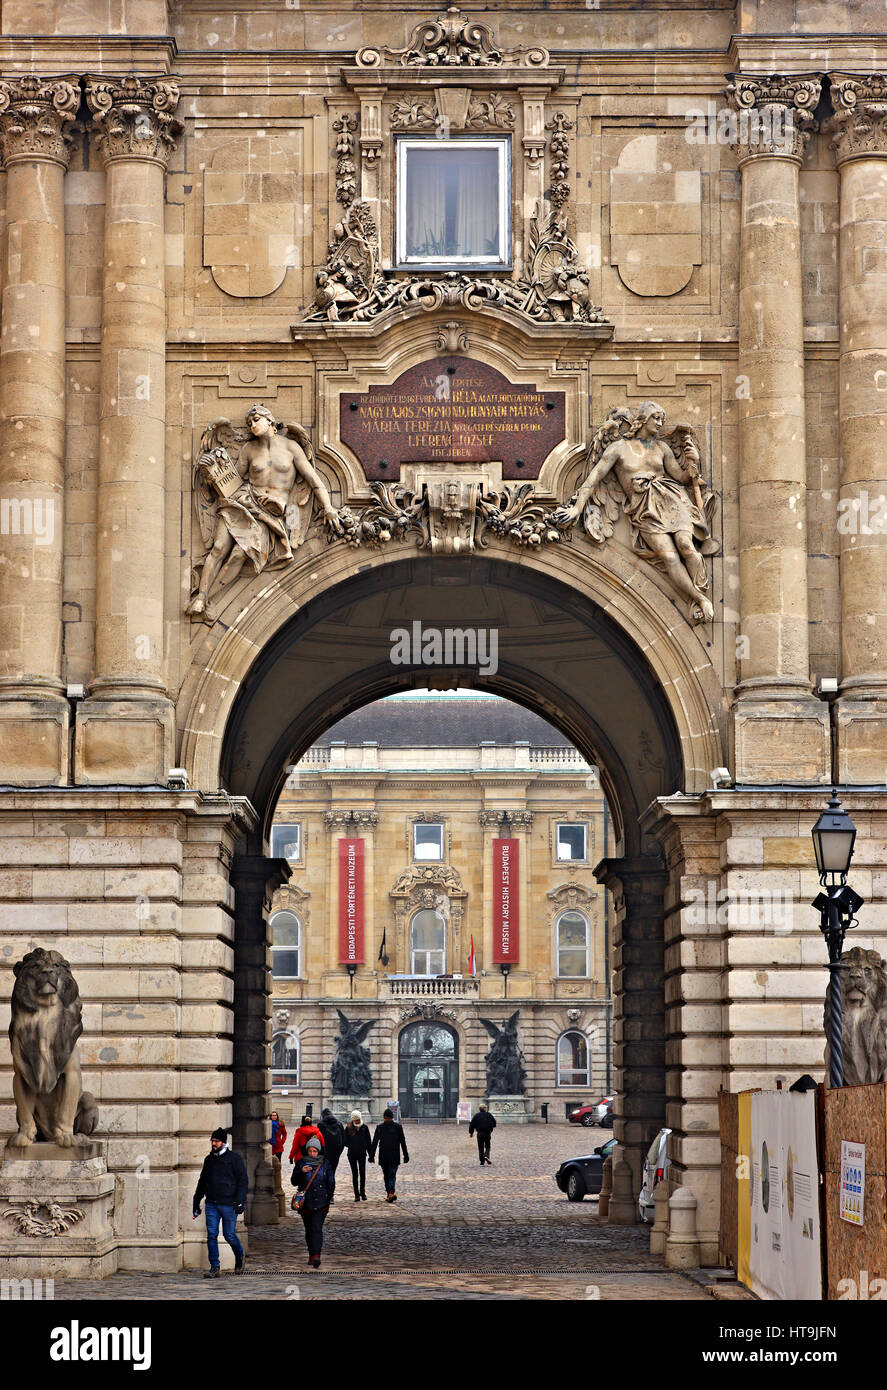 The entrance to the Royal Palace, Castle Hill, Buda, Budapest, Hungary. Stock Photo